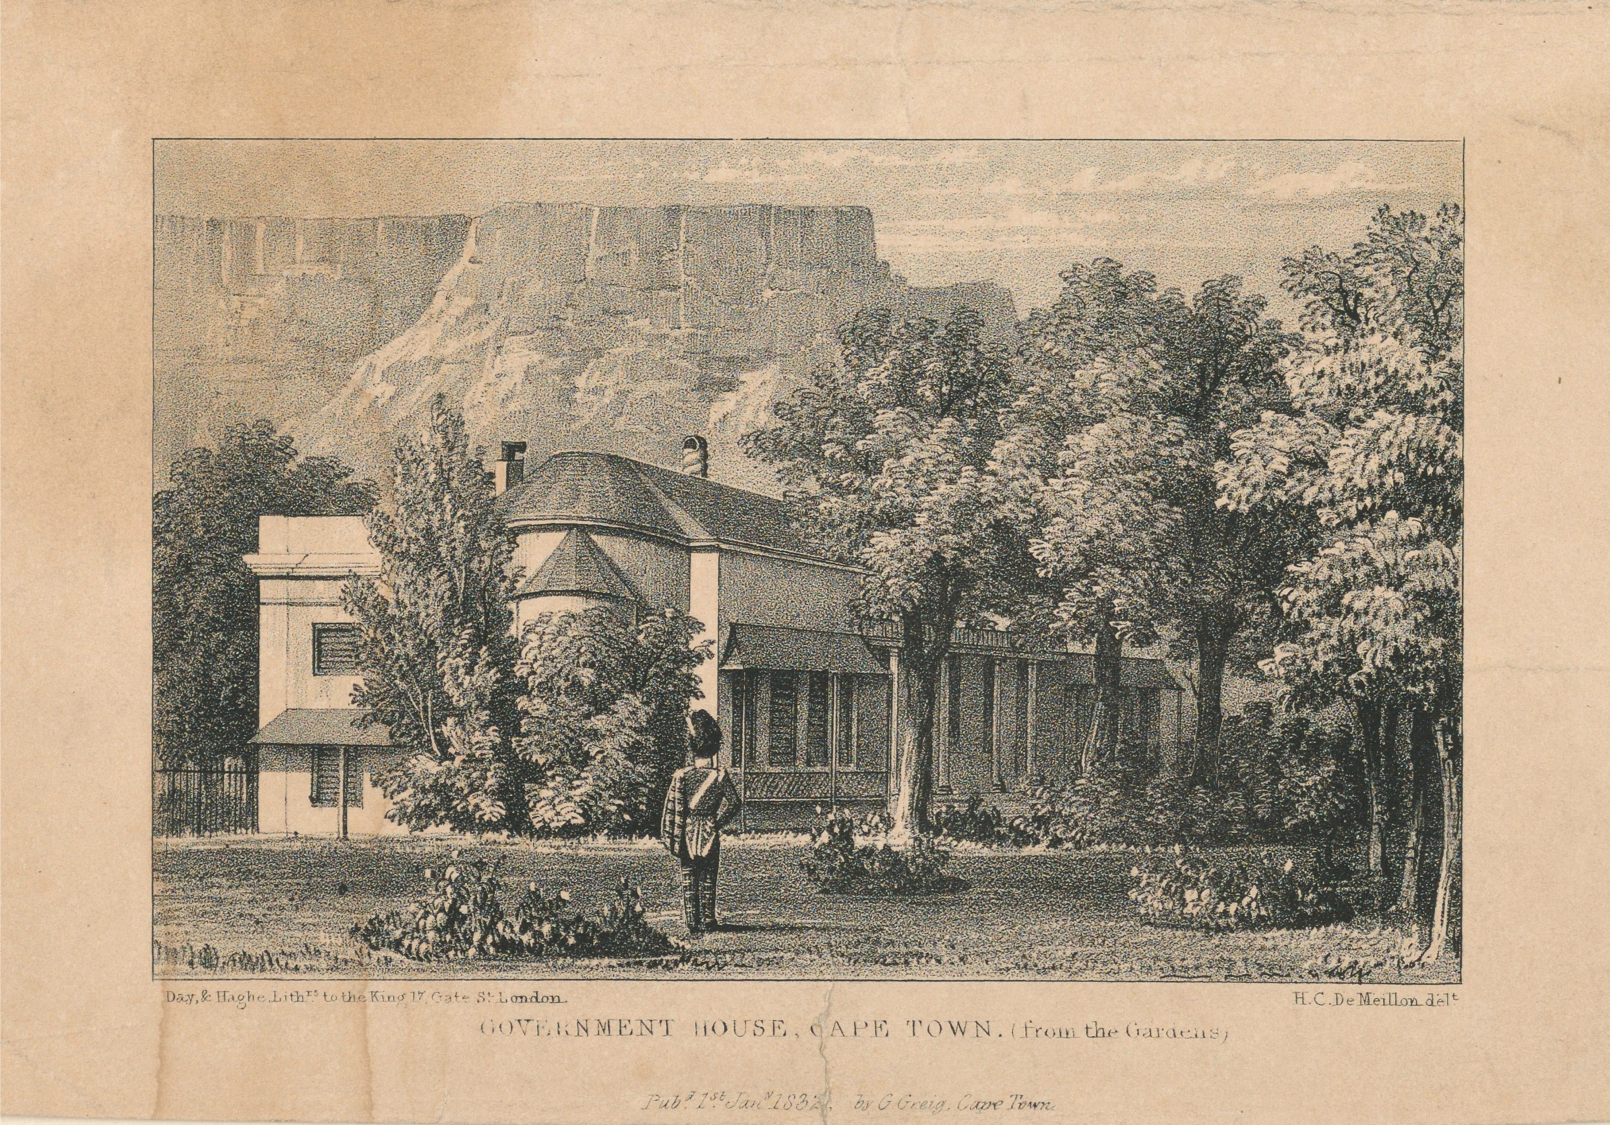 Government House, Cape Town, 1831, 1832, St. John's Cemetery Project, Old Parramattans, Elizabeth Bourke, Governor Richard Bourke, Governor of New South Wales